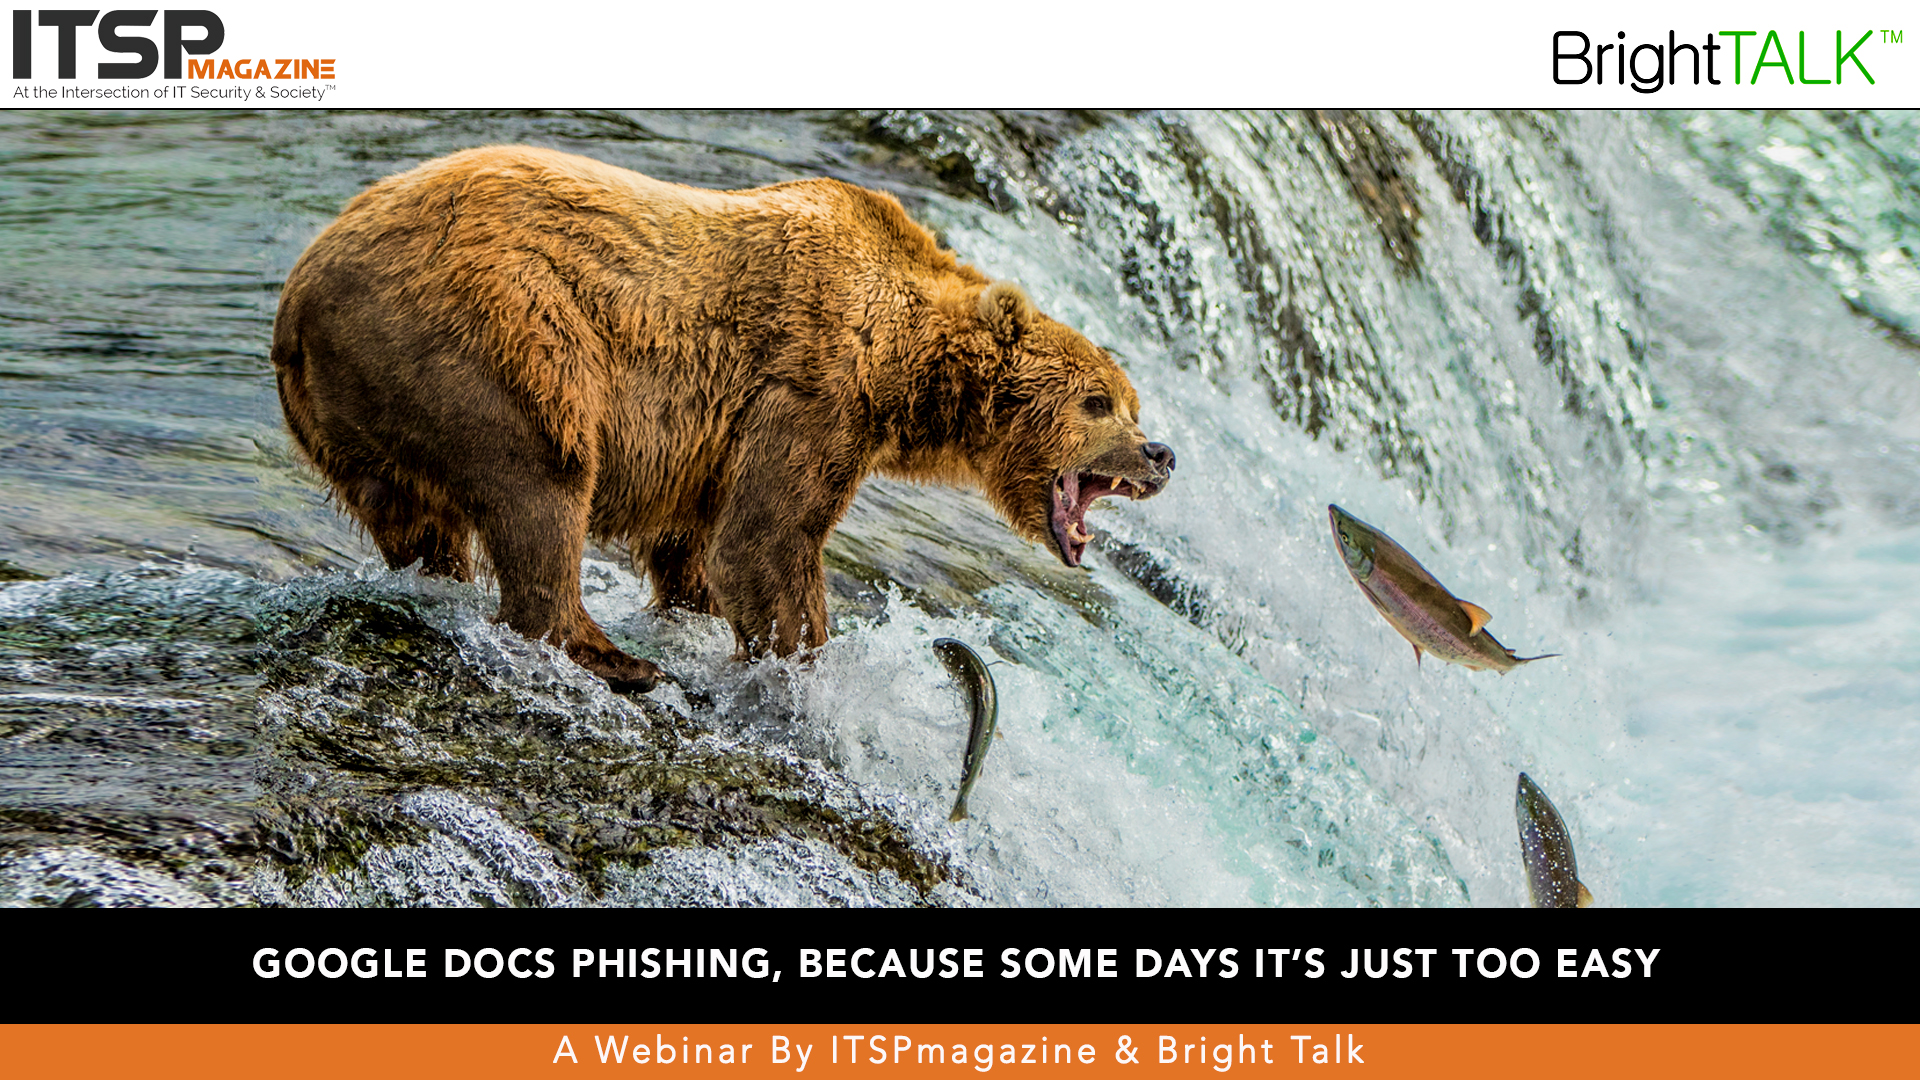 Google Docs phishing, because some days IT's just too easy.jpg